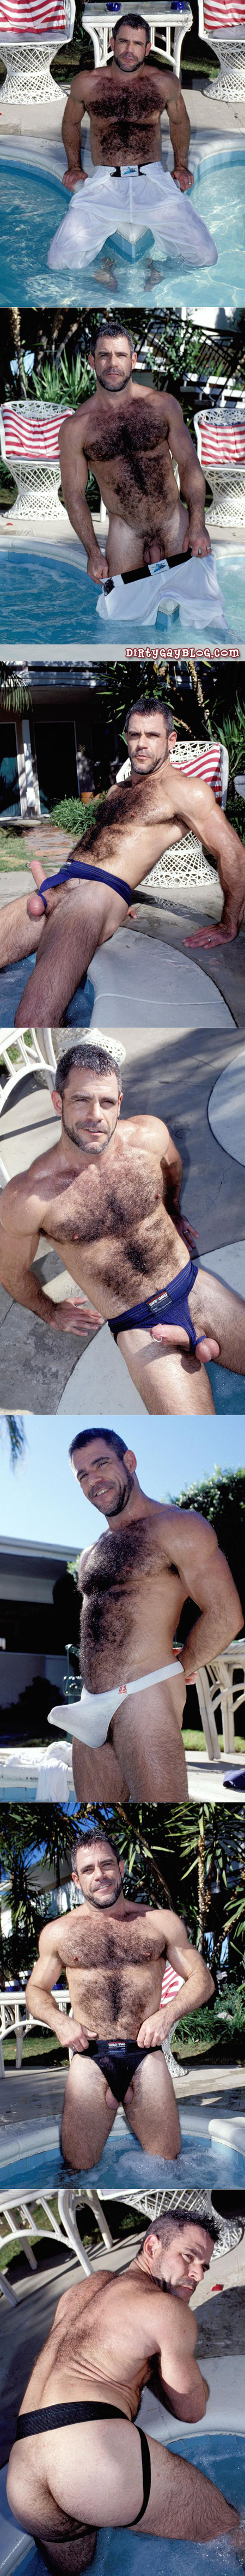 Hairy muscle Daddy wolf shows off his Prince Albert in skimpy wet underwear by the pool.